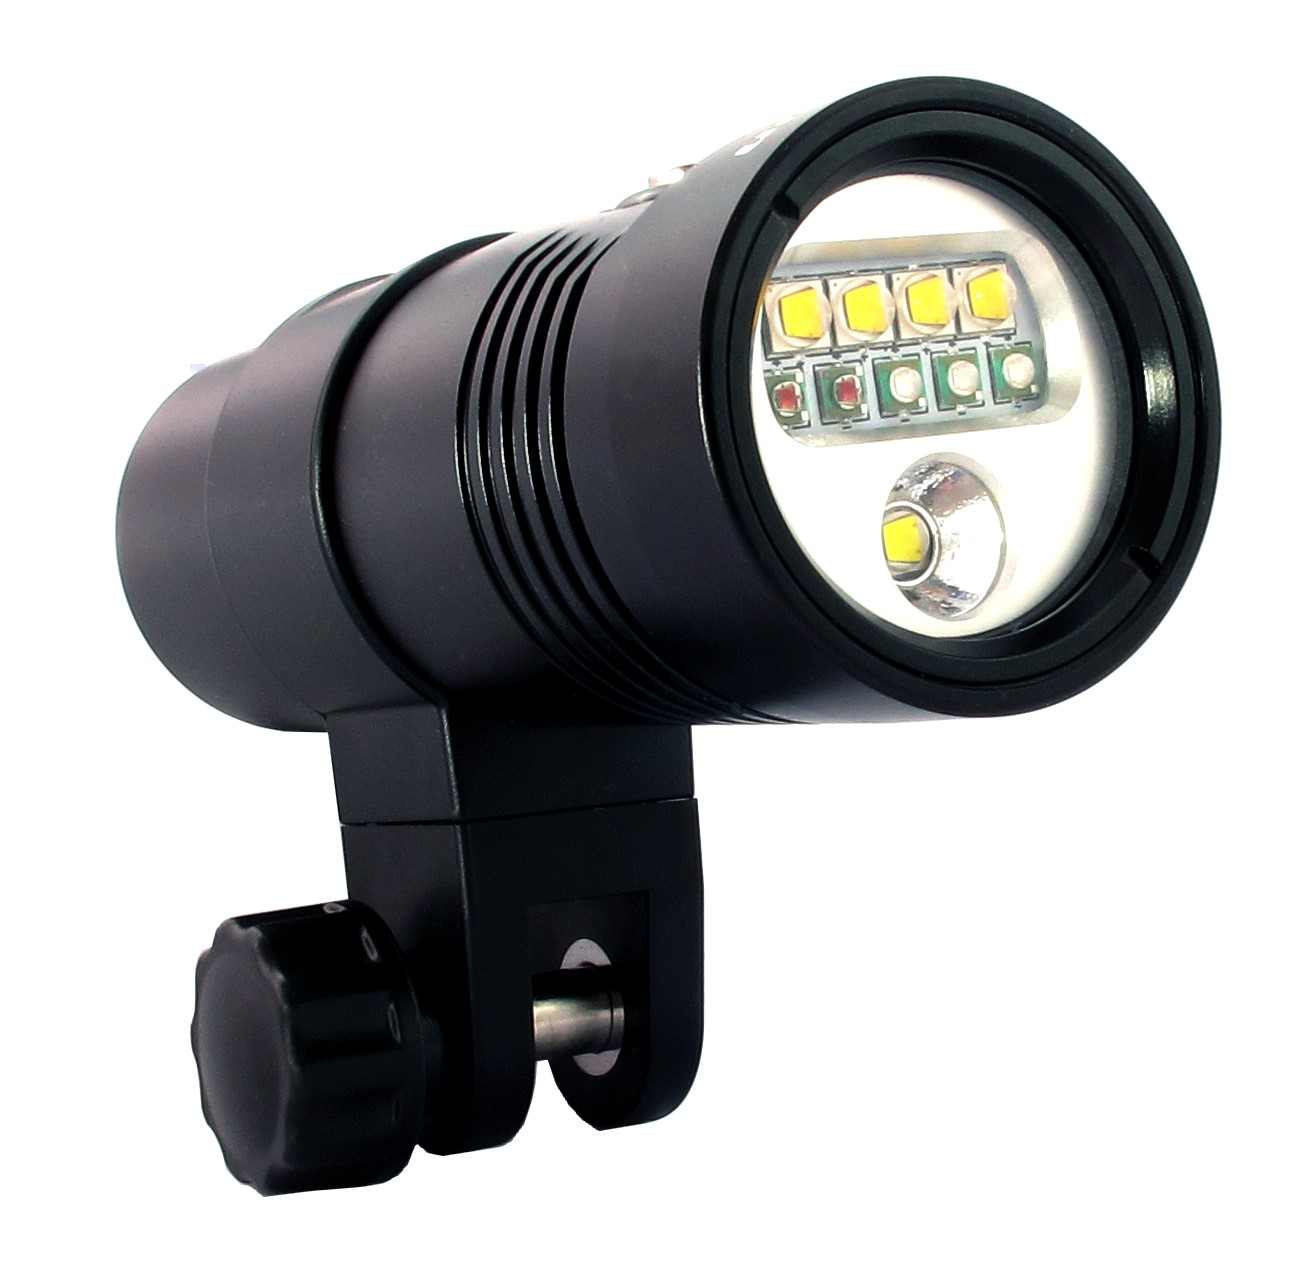 LED Tauchlampe DS-2100NWRUV